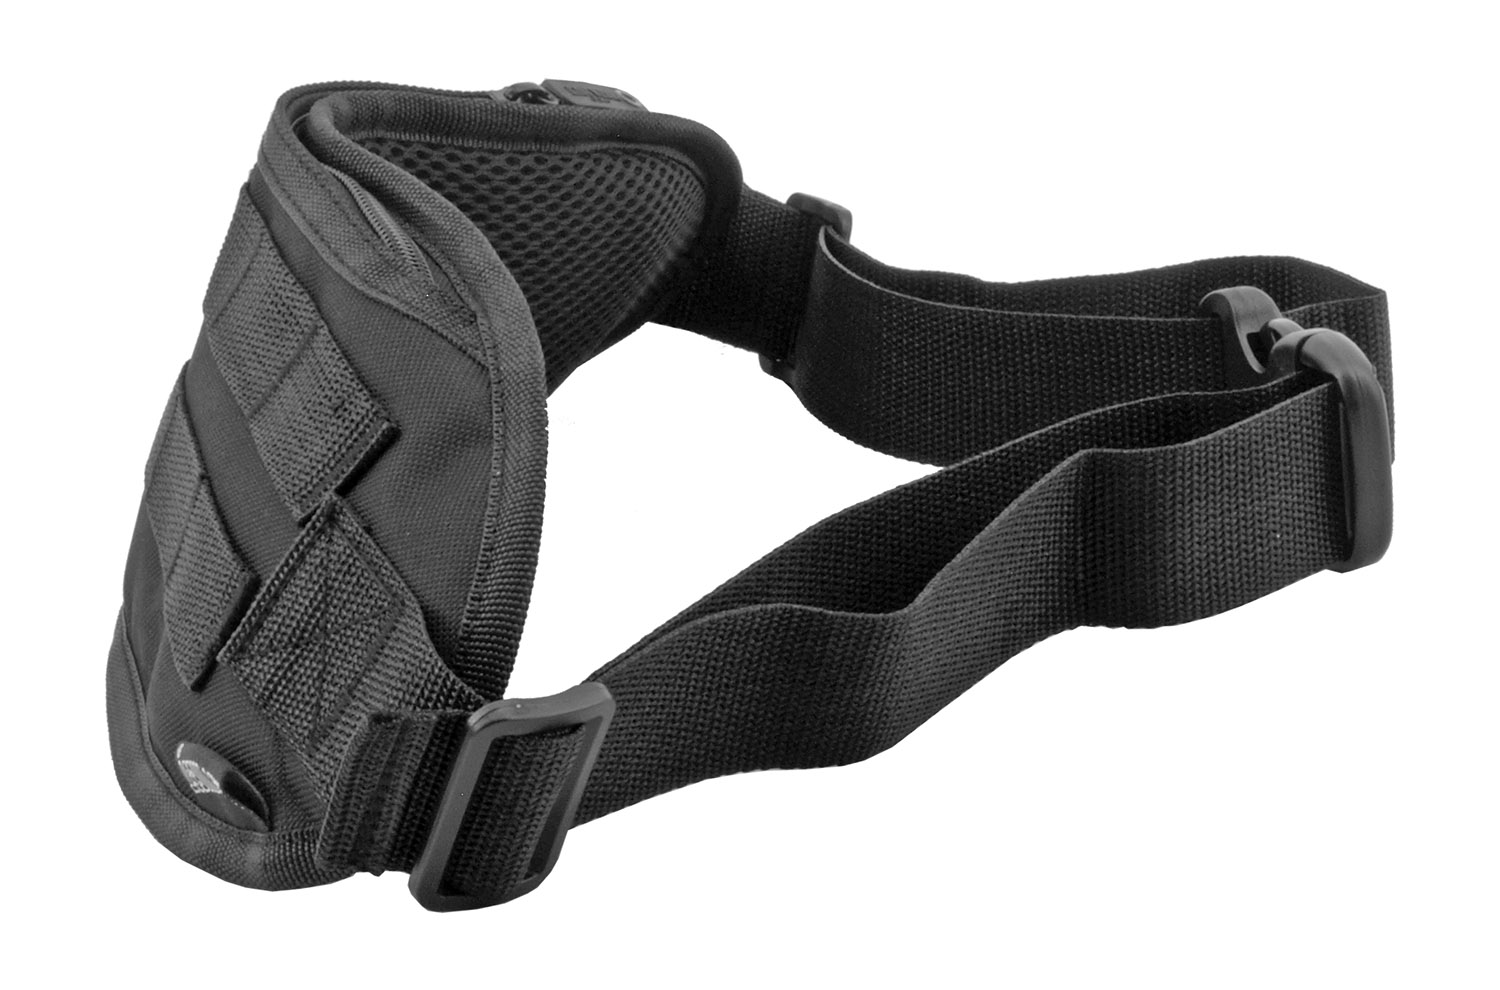 Tactical Fanny Pack Hip Bag with Molle Strap - Black